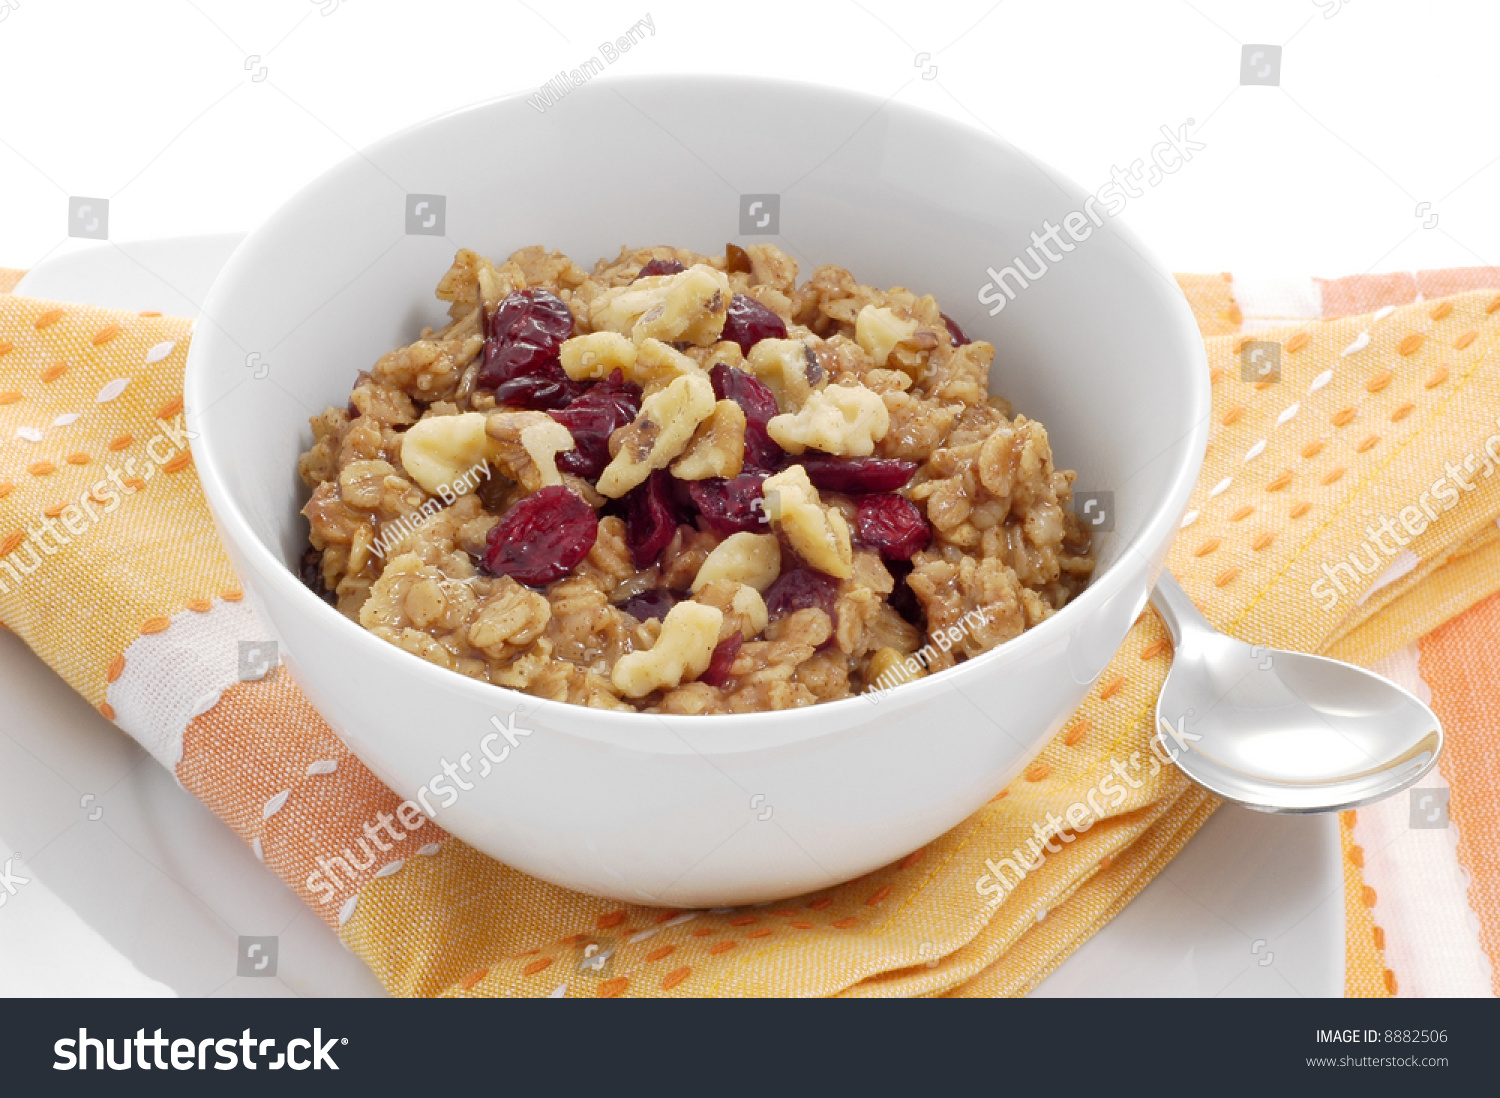 Bowl Of Oatmeal With Dried Fruit And Nuts. Stock Photo 8882506 ...